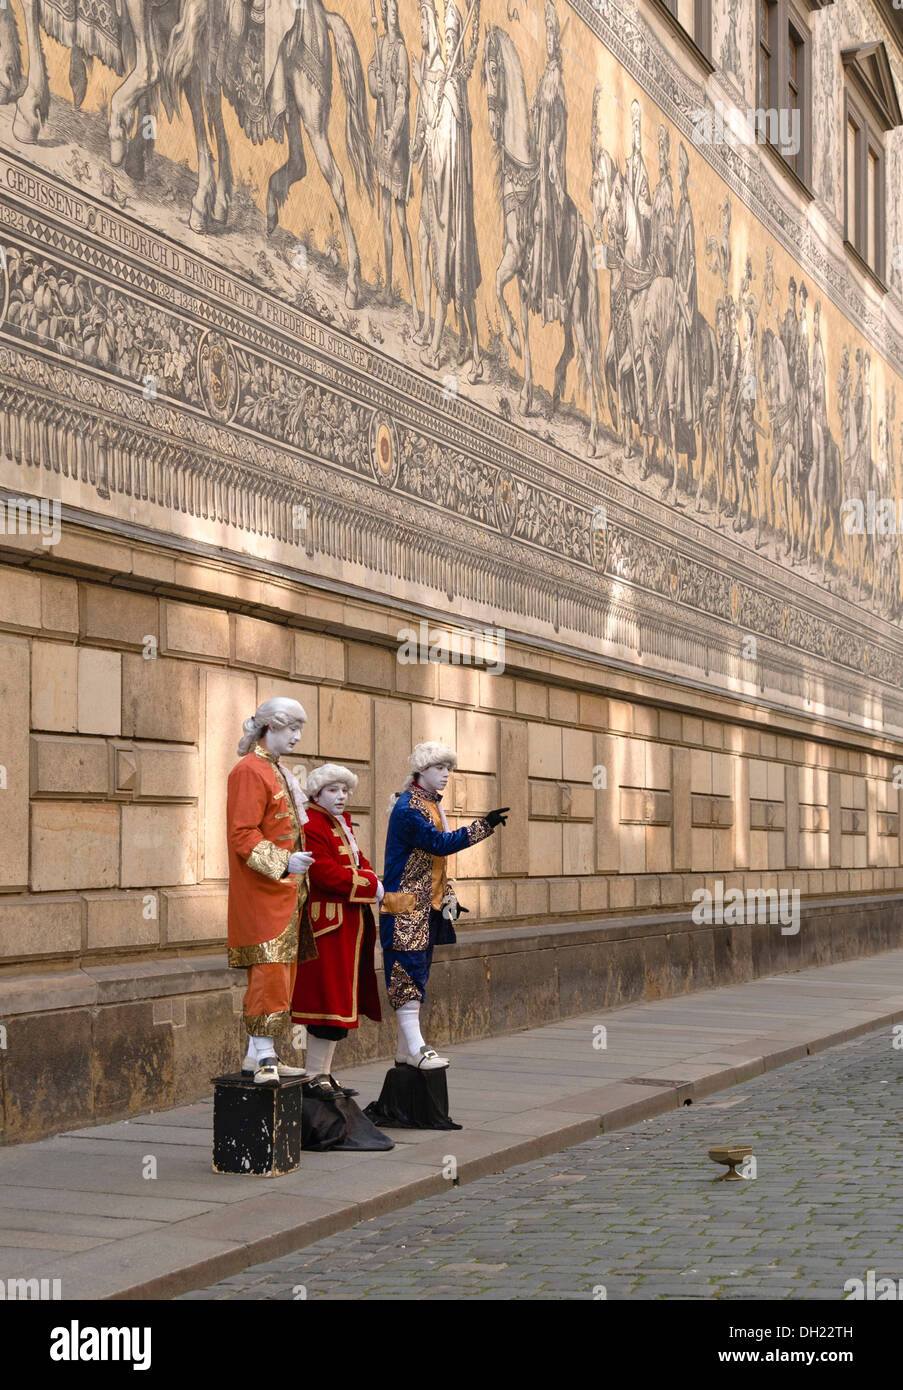 Mime artists standing in front of the Fuerstenzug mural, Dresden, Saxony - Stock Image